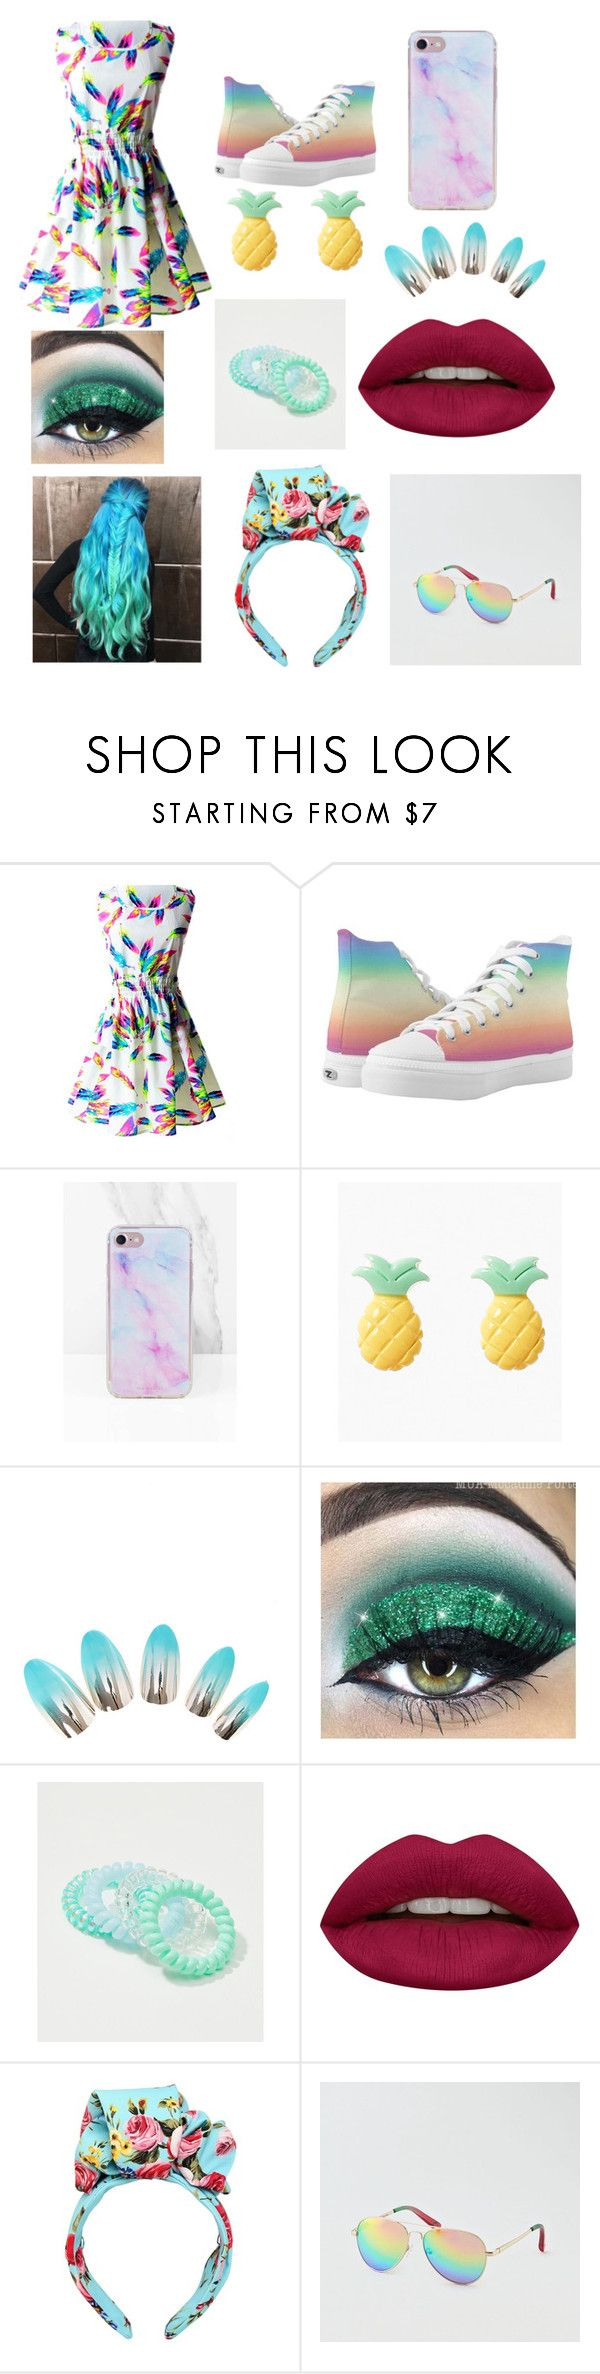 """I want this outfit 😍😍😍😍"" by phils-eyelash on Polyvore featuring LOFT, Huda Beauty, Dolce&Gabbana and American Eagle Outfitters"